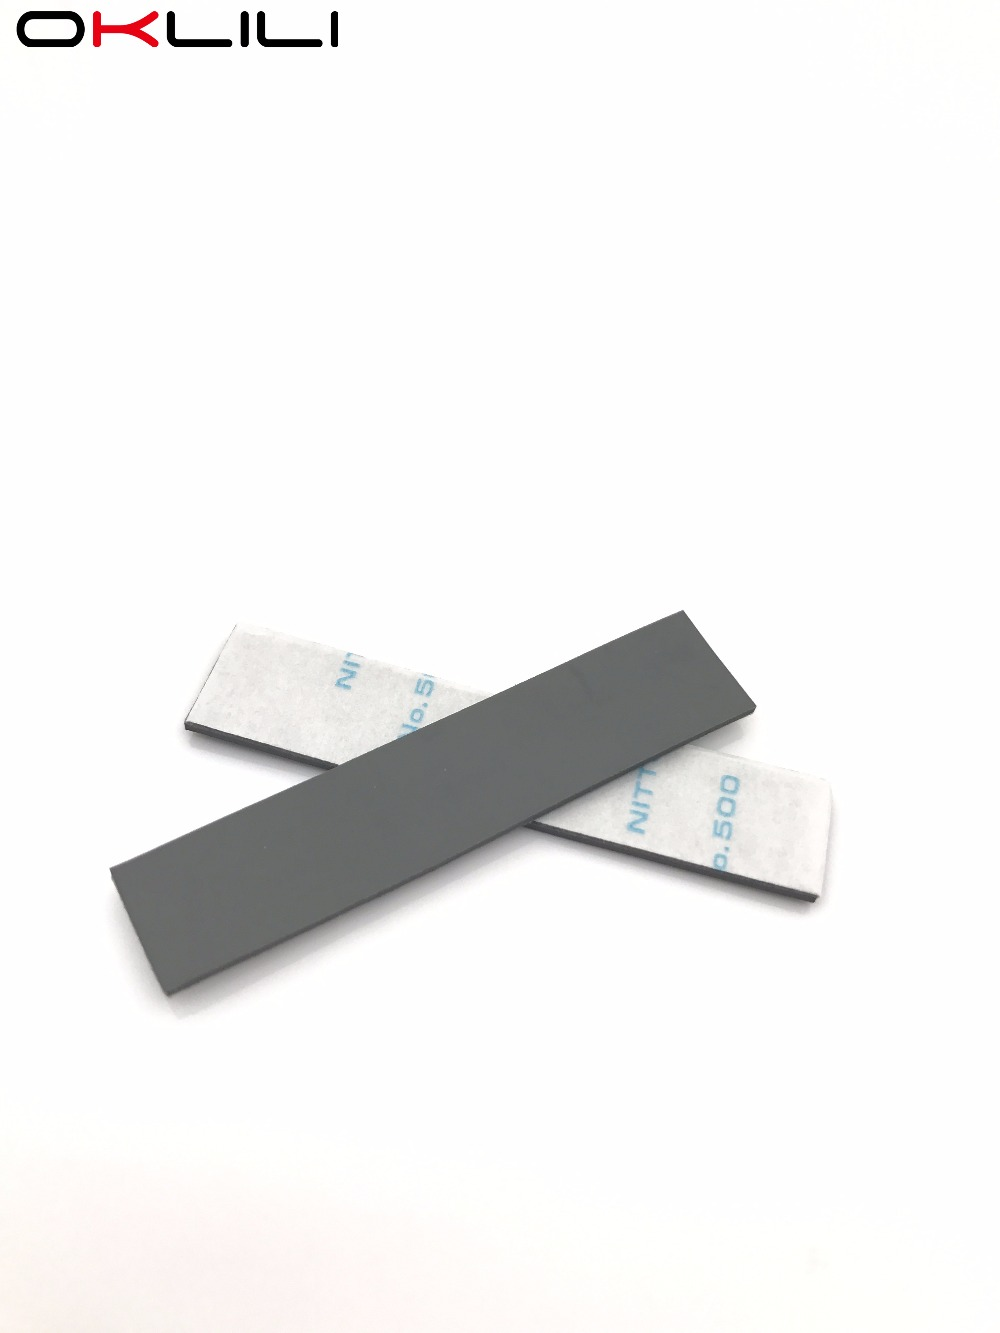 20X Separation Pad Rubber Friction for Xerox Phaser 3420 3425 3450 3500 3150 3130 3120 3119 3115 3121 M15 3200 3300 PE120 PE220 black refill toner for xerox 3110 3115 3116 3117 3119 more 100g